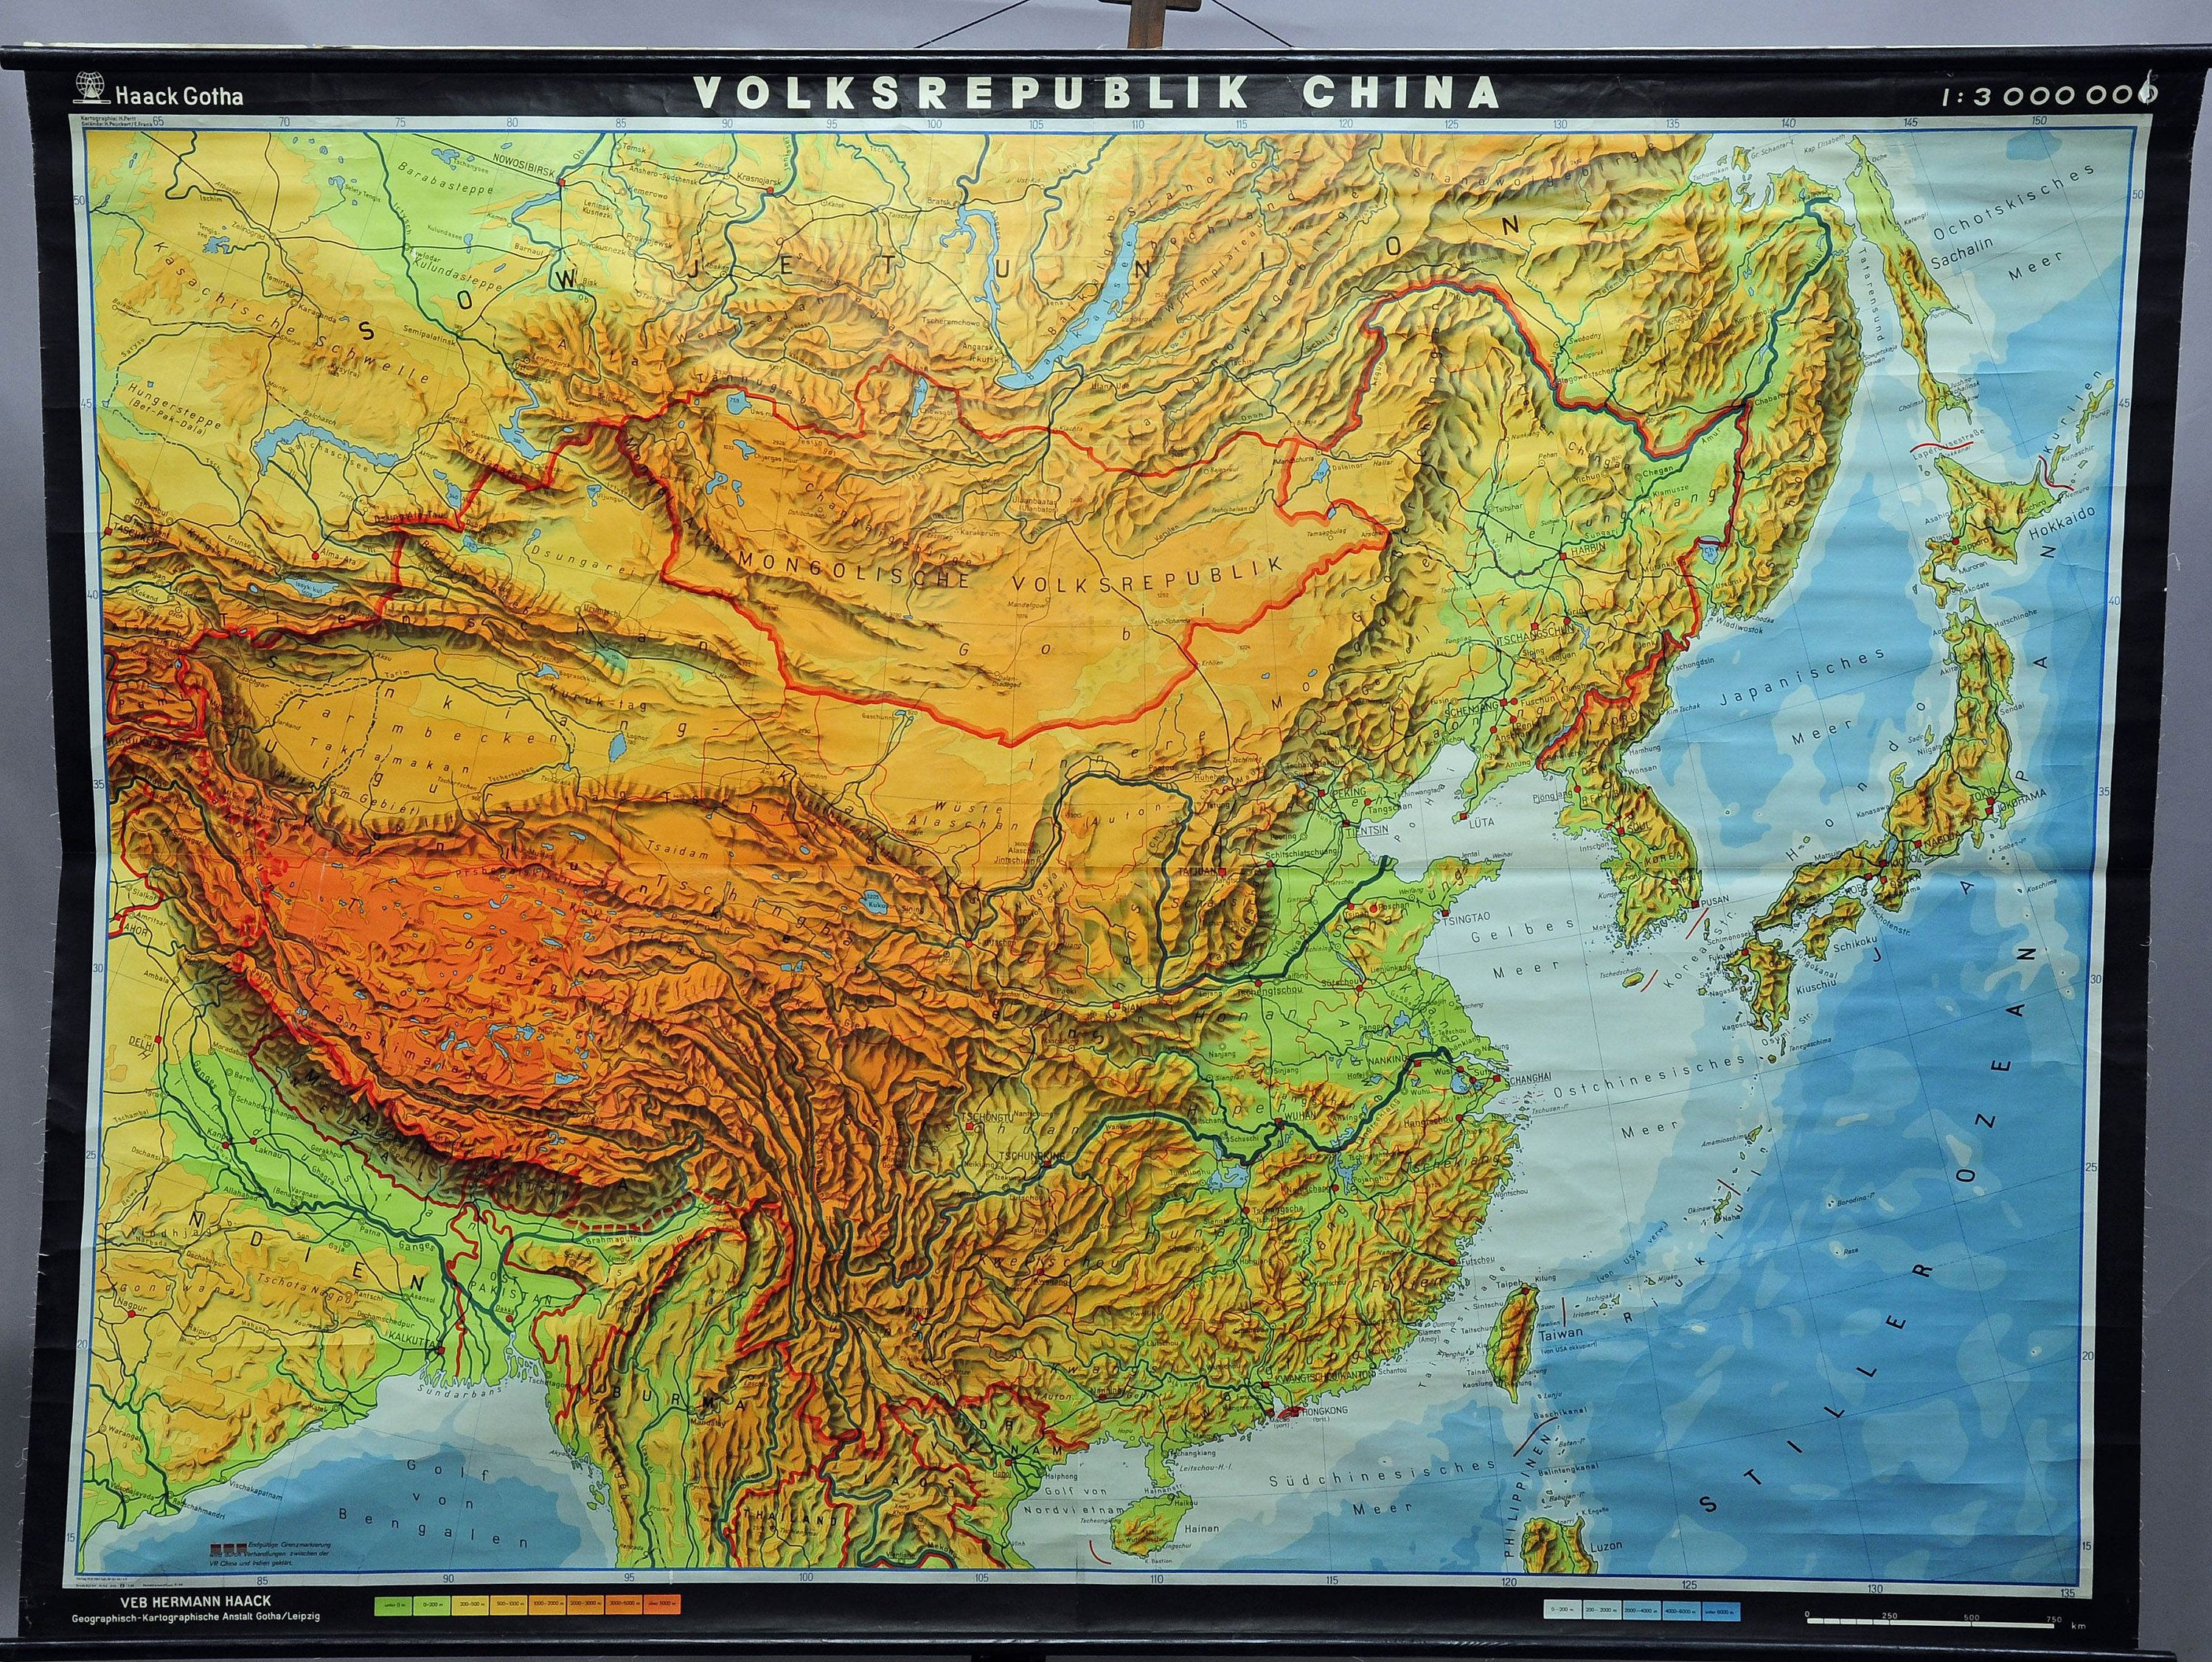 Old vintage pull down wall chart map china asian decoration colorful asian wall chart buy online httpetsy2tl9ebz gumiabroncs Image collections